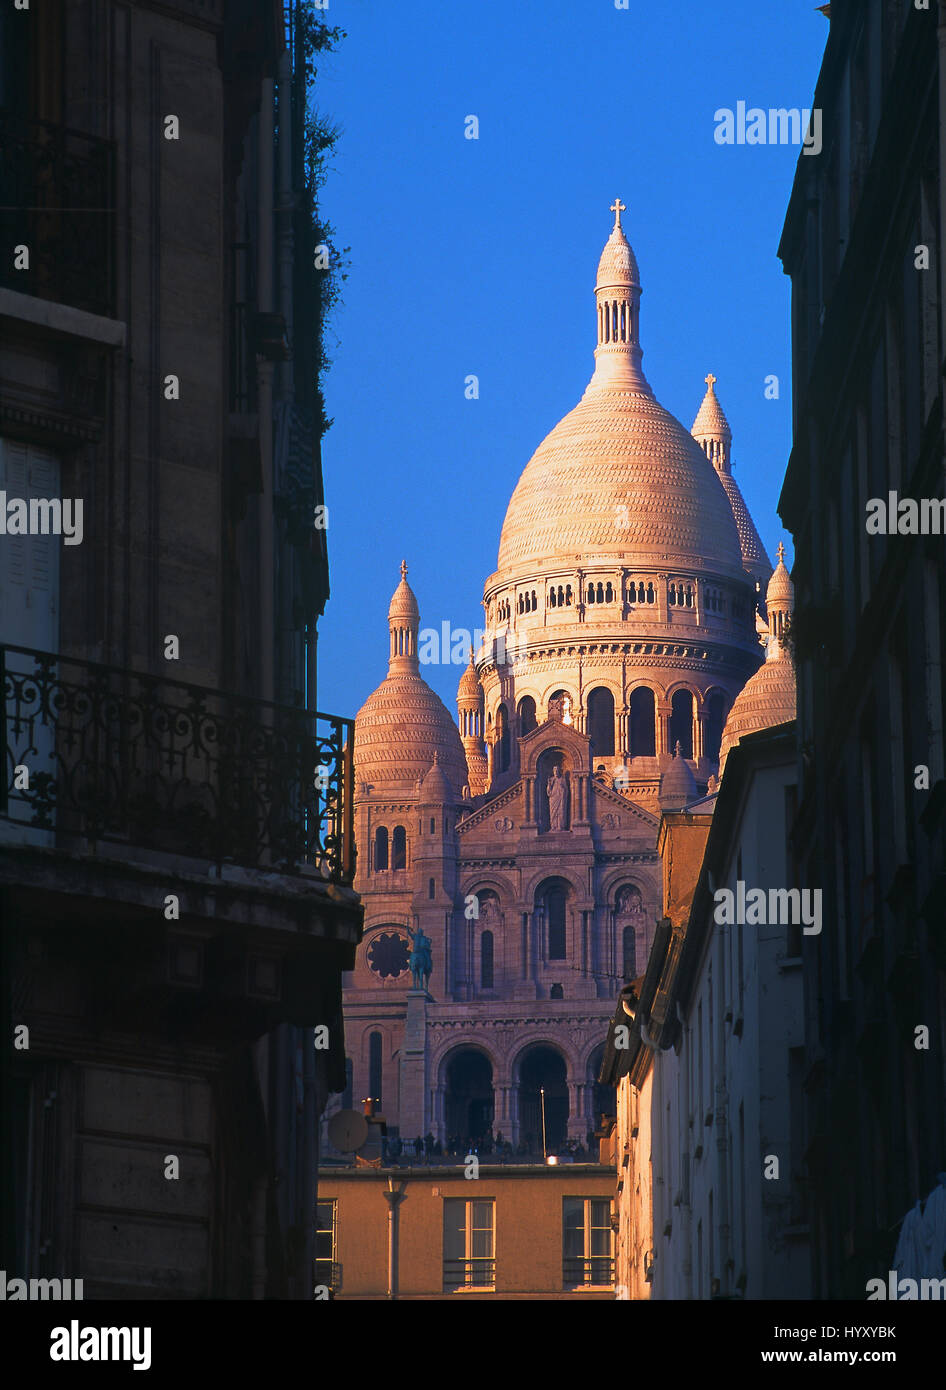 The Basilique du Sacré-Cœur ('Basilica of the Sacred Heart') view at sunset from a typical parisian - Stock Image